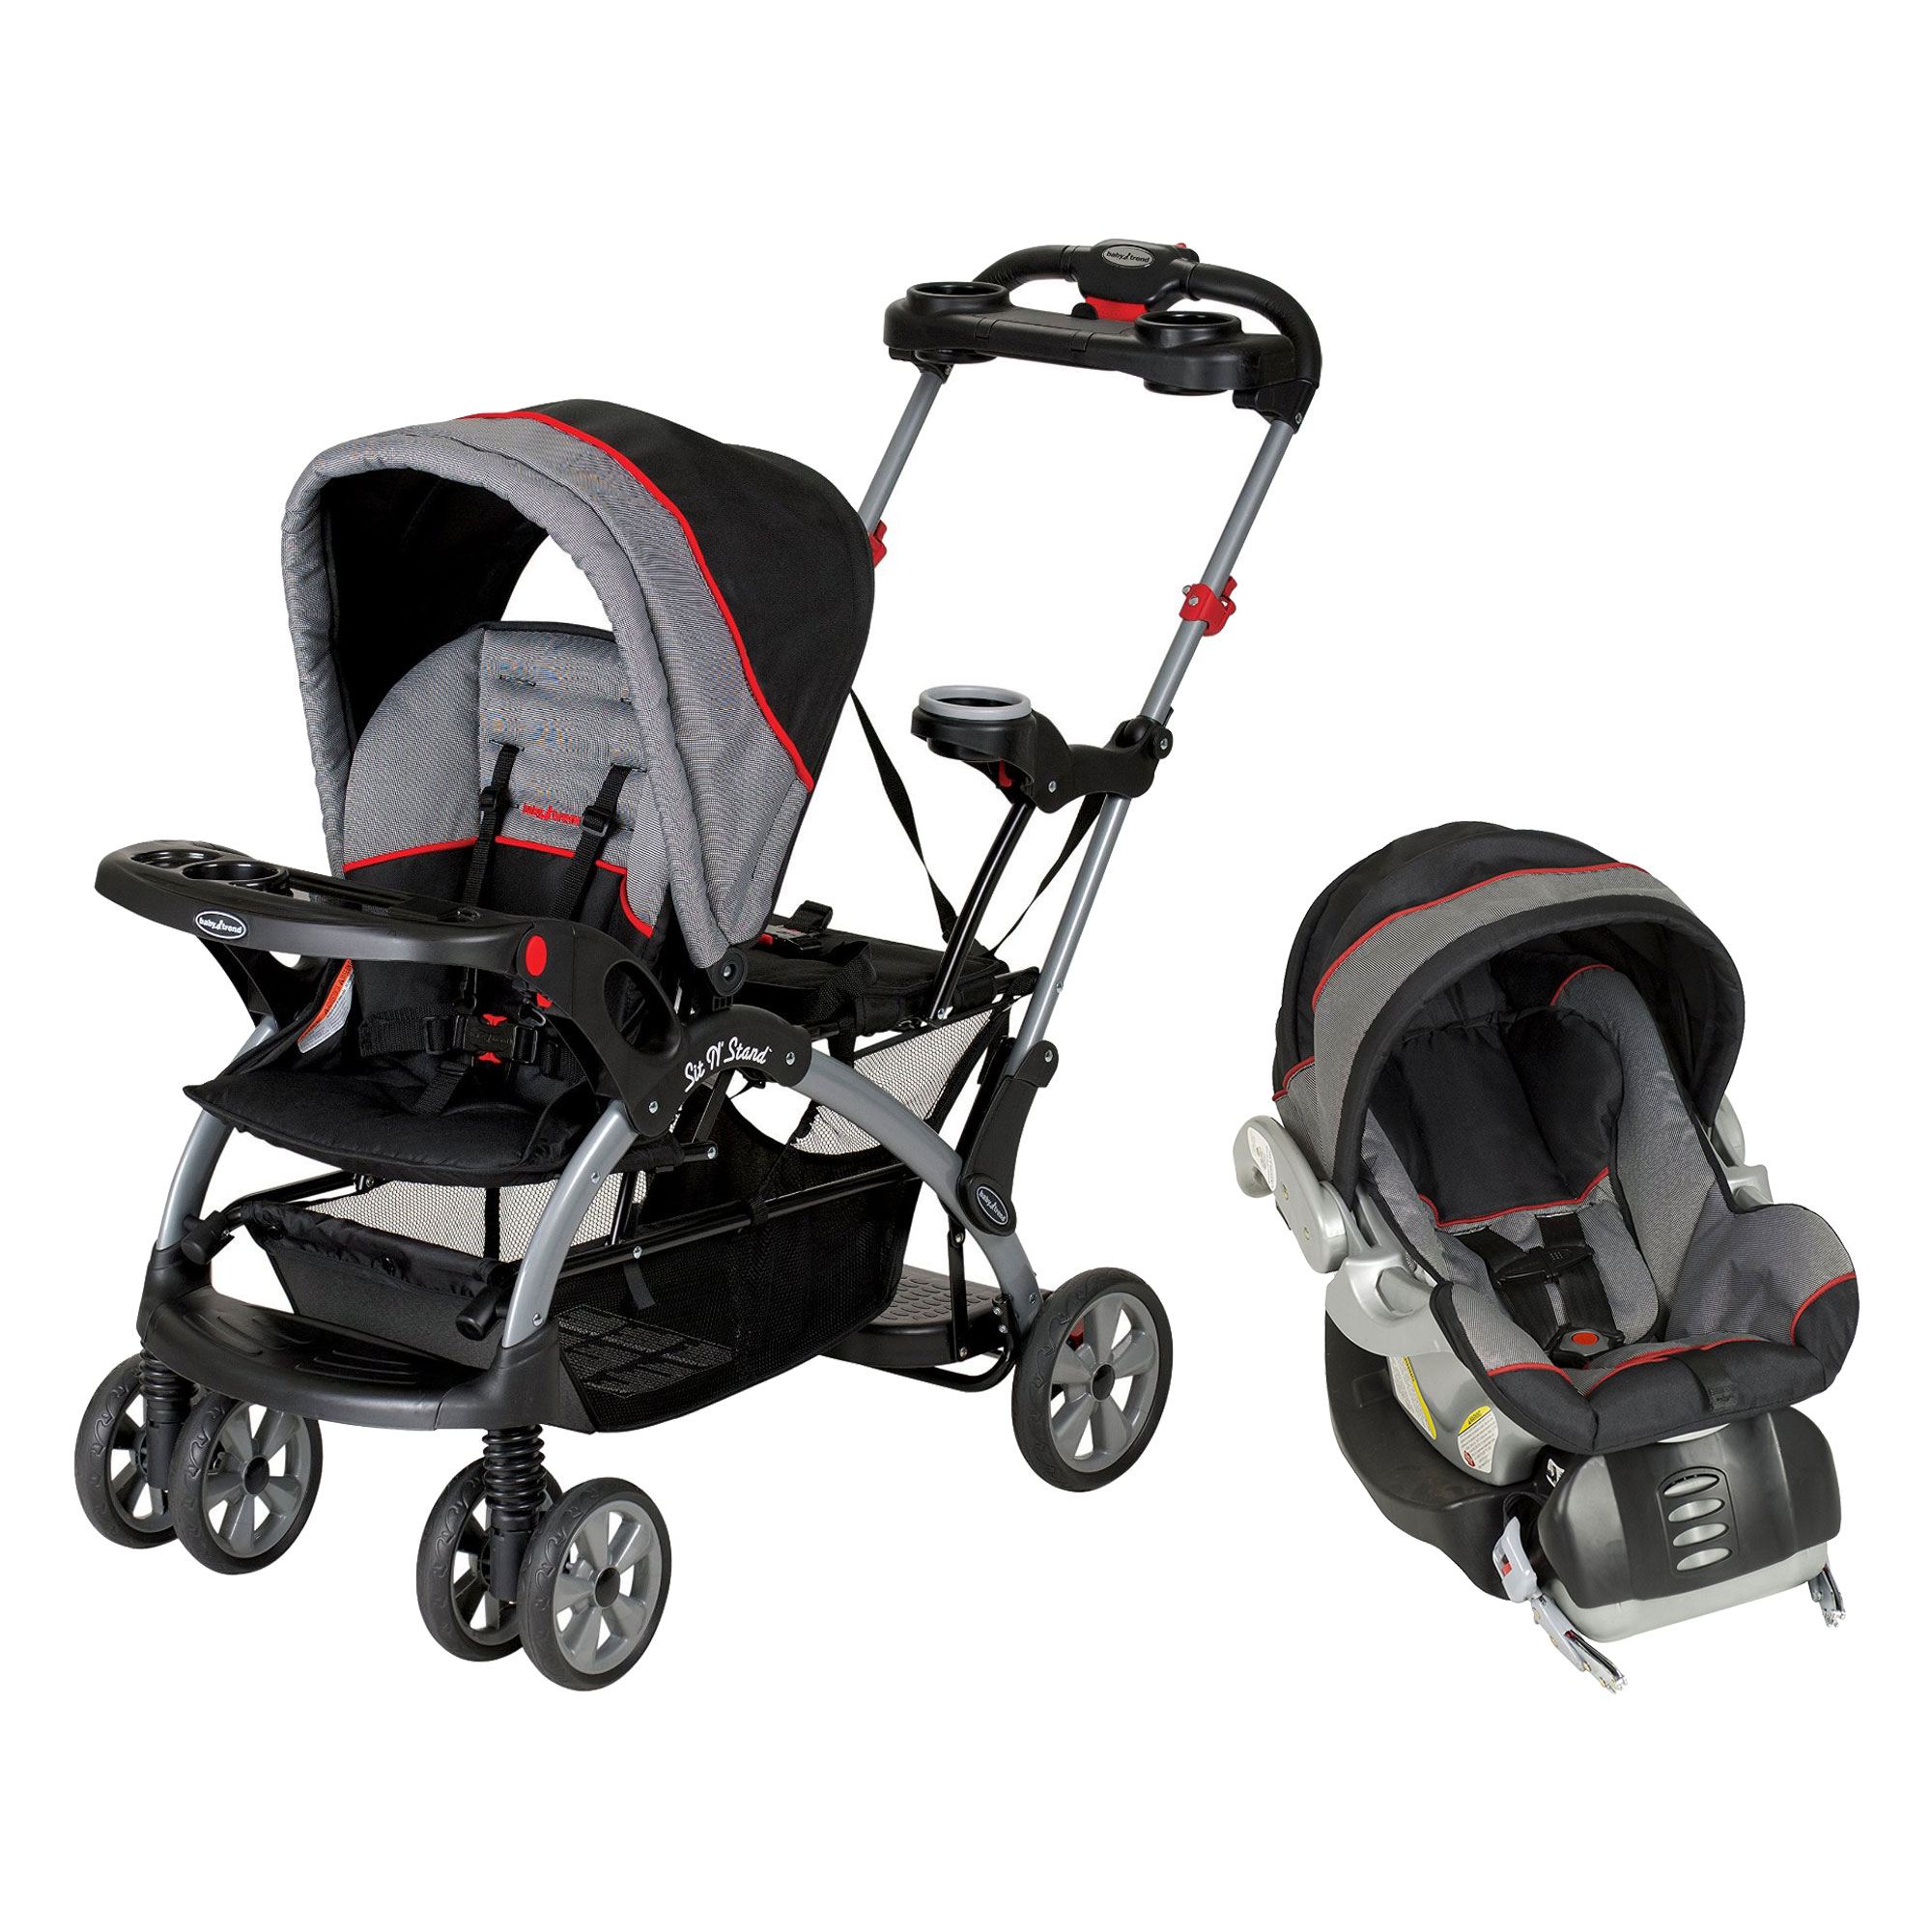 Baby Trend Sit N' Stand Platform Canopy Ultra Stroller Travel System w  Car Seat by Baby Trend